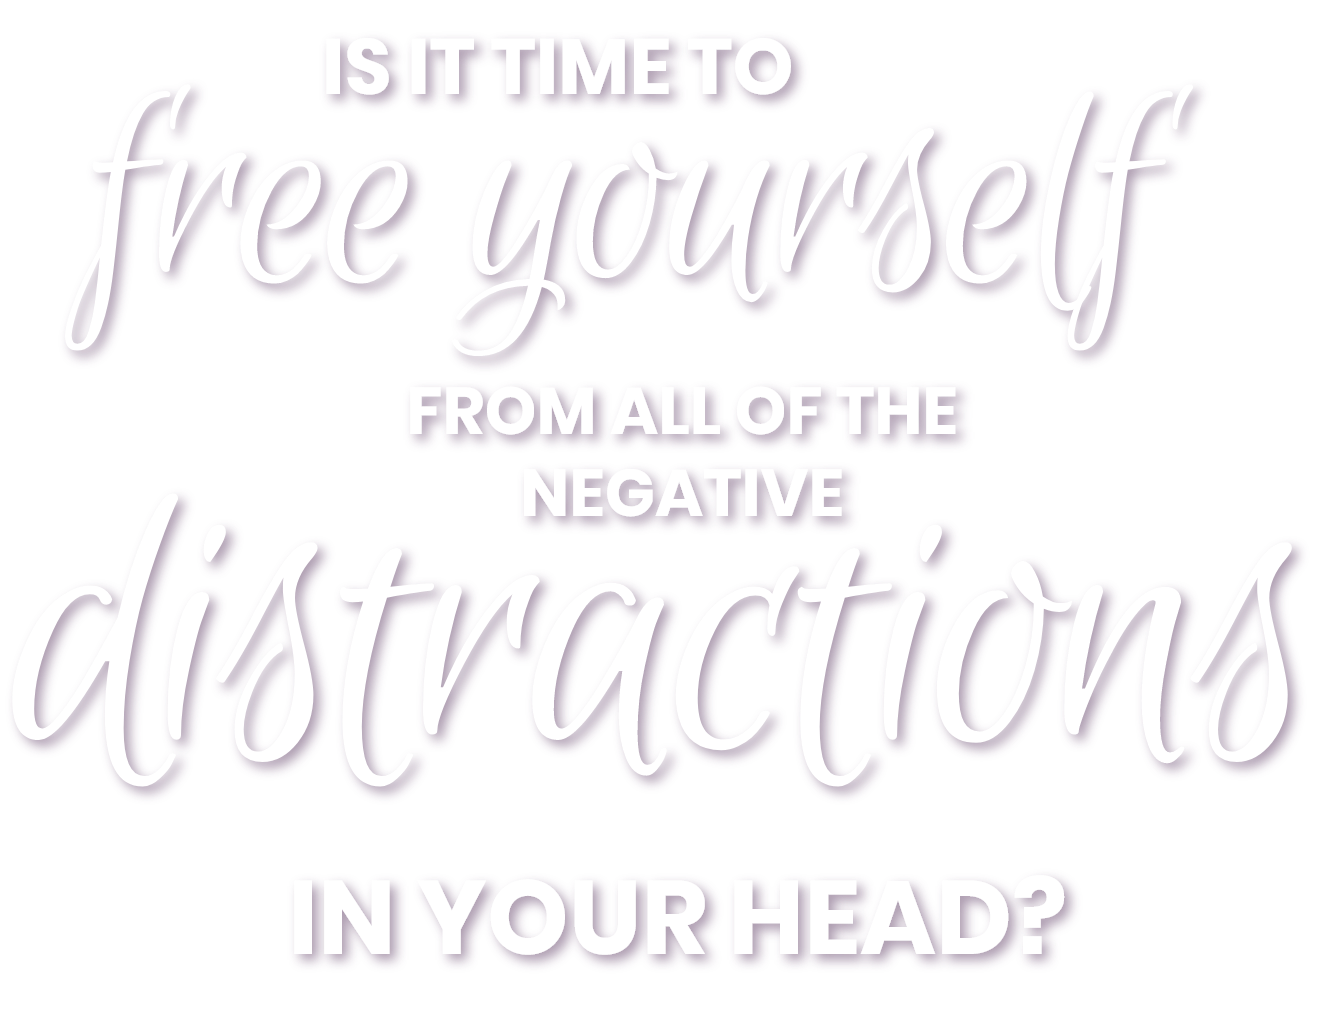 It's time to free yourself from all of the distractions in your head?